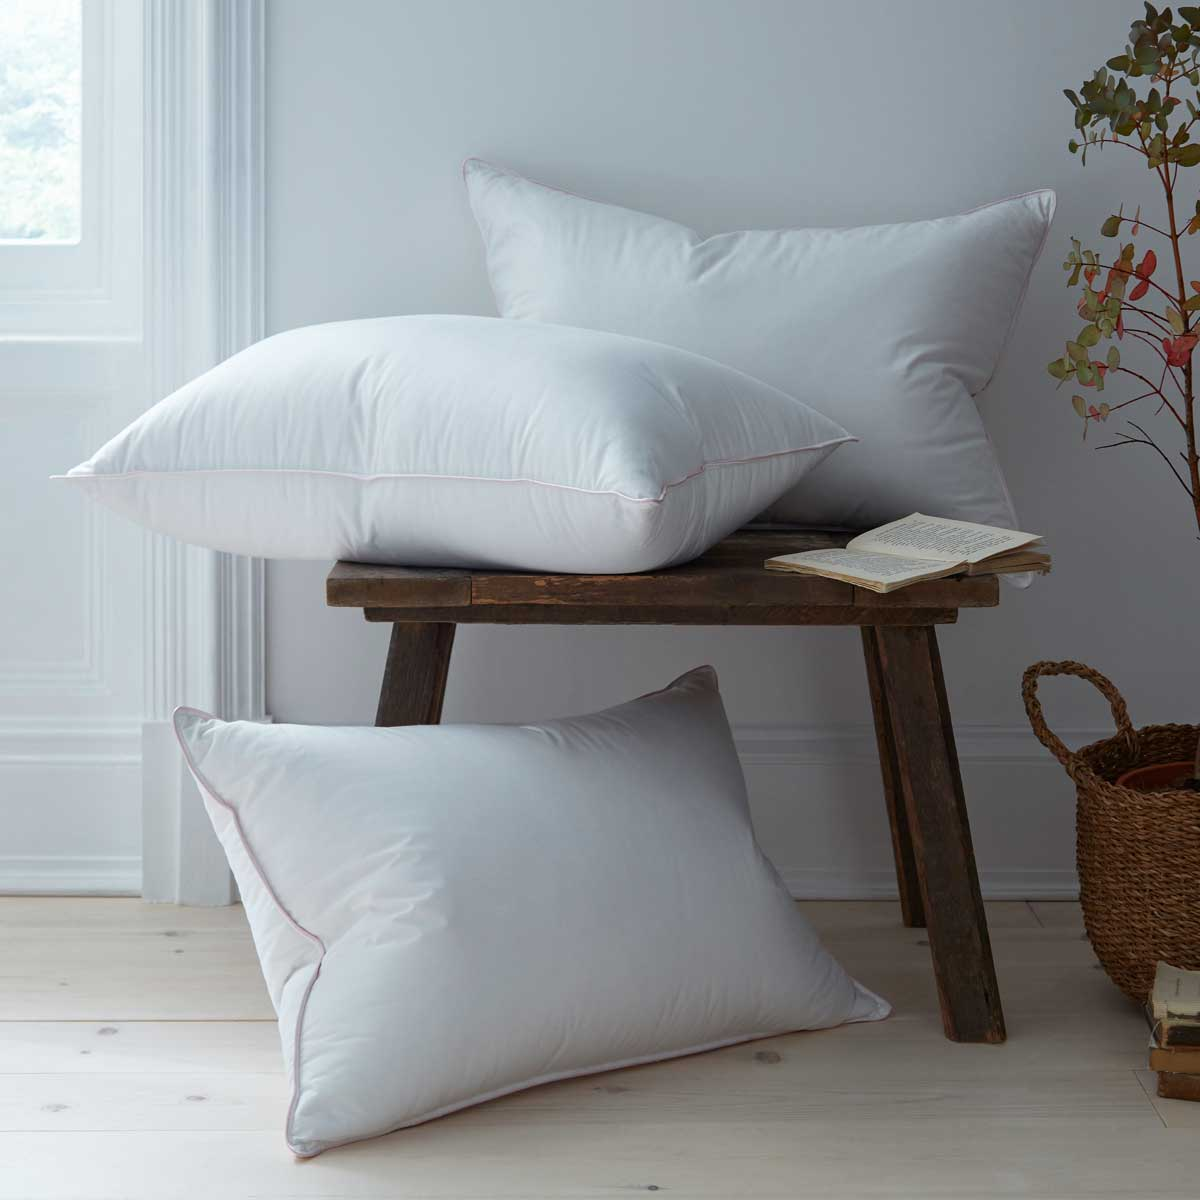 Essential questions to help you find the perfect pillow